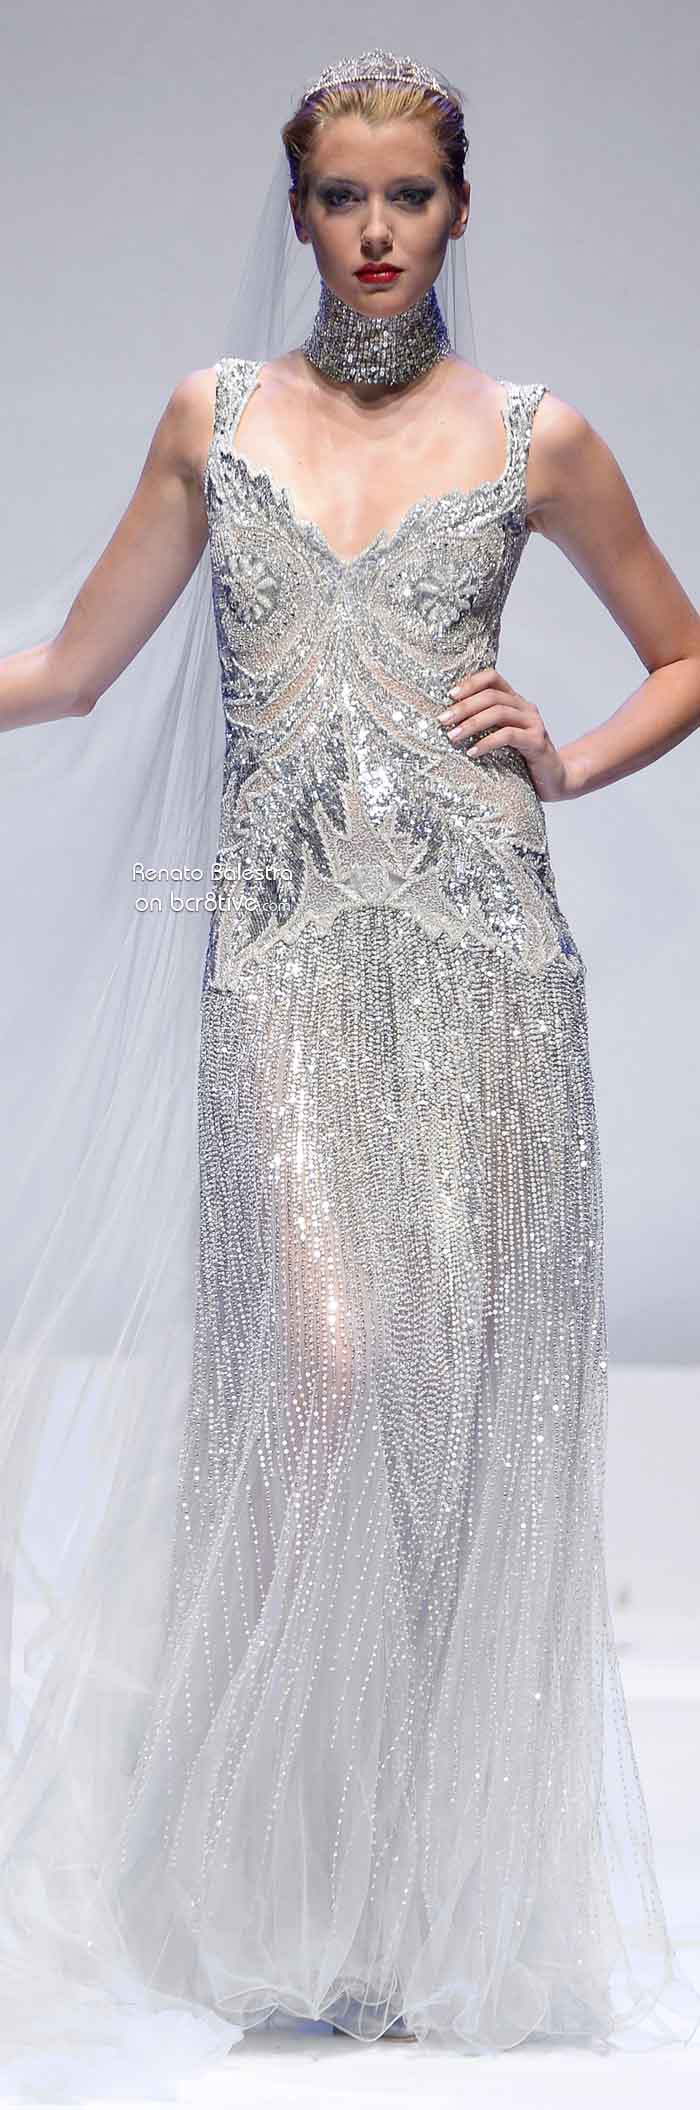 Renato Balestra Fall Winter 2012-13 Couture